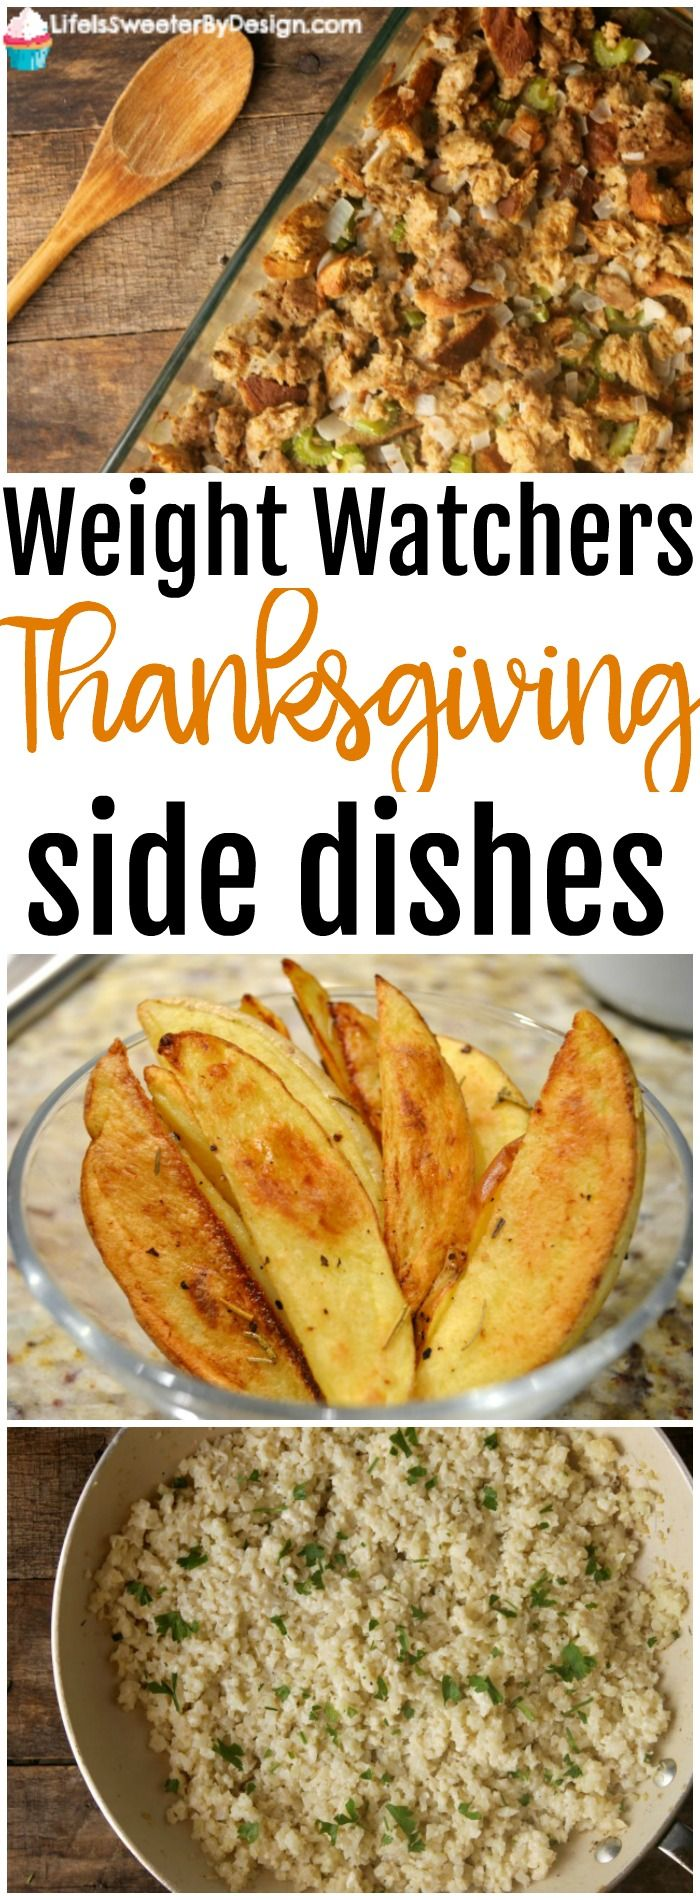 Weight Watchers Thanksgiving Side Dishes – Life is Sweeter By Design